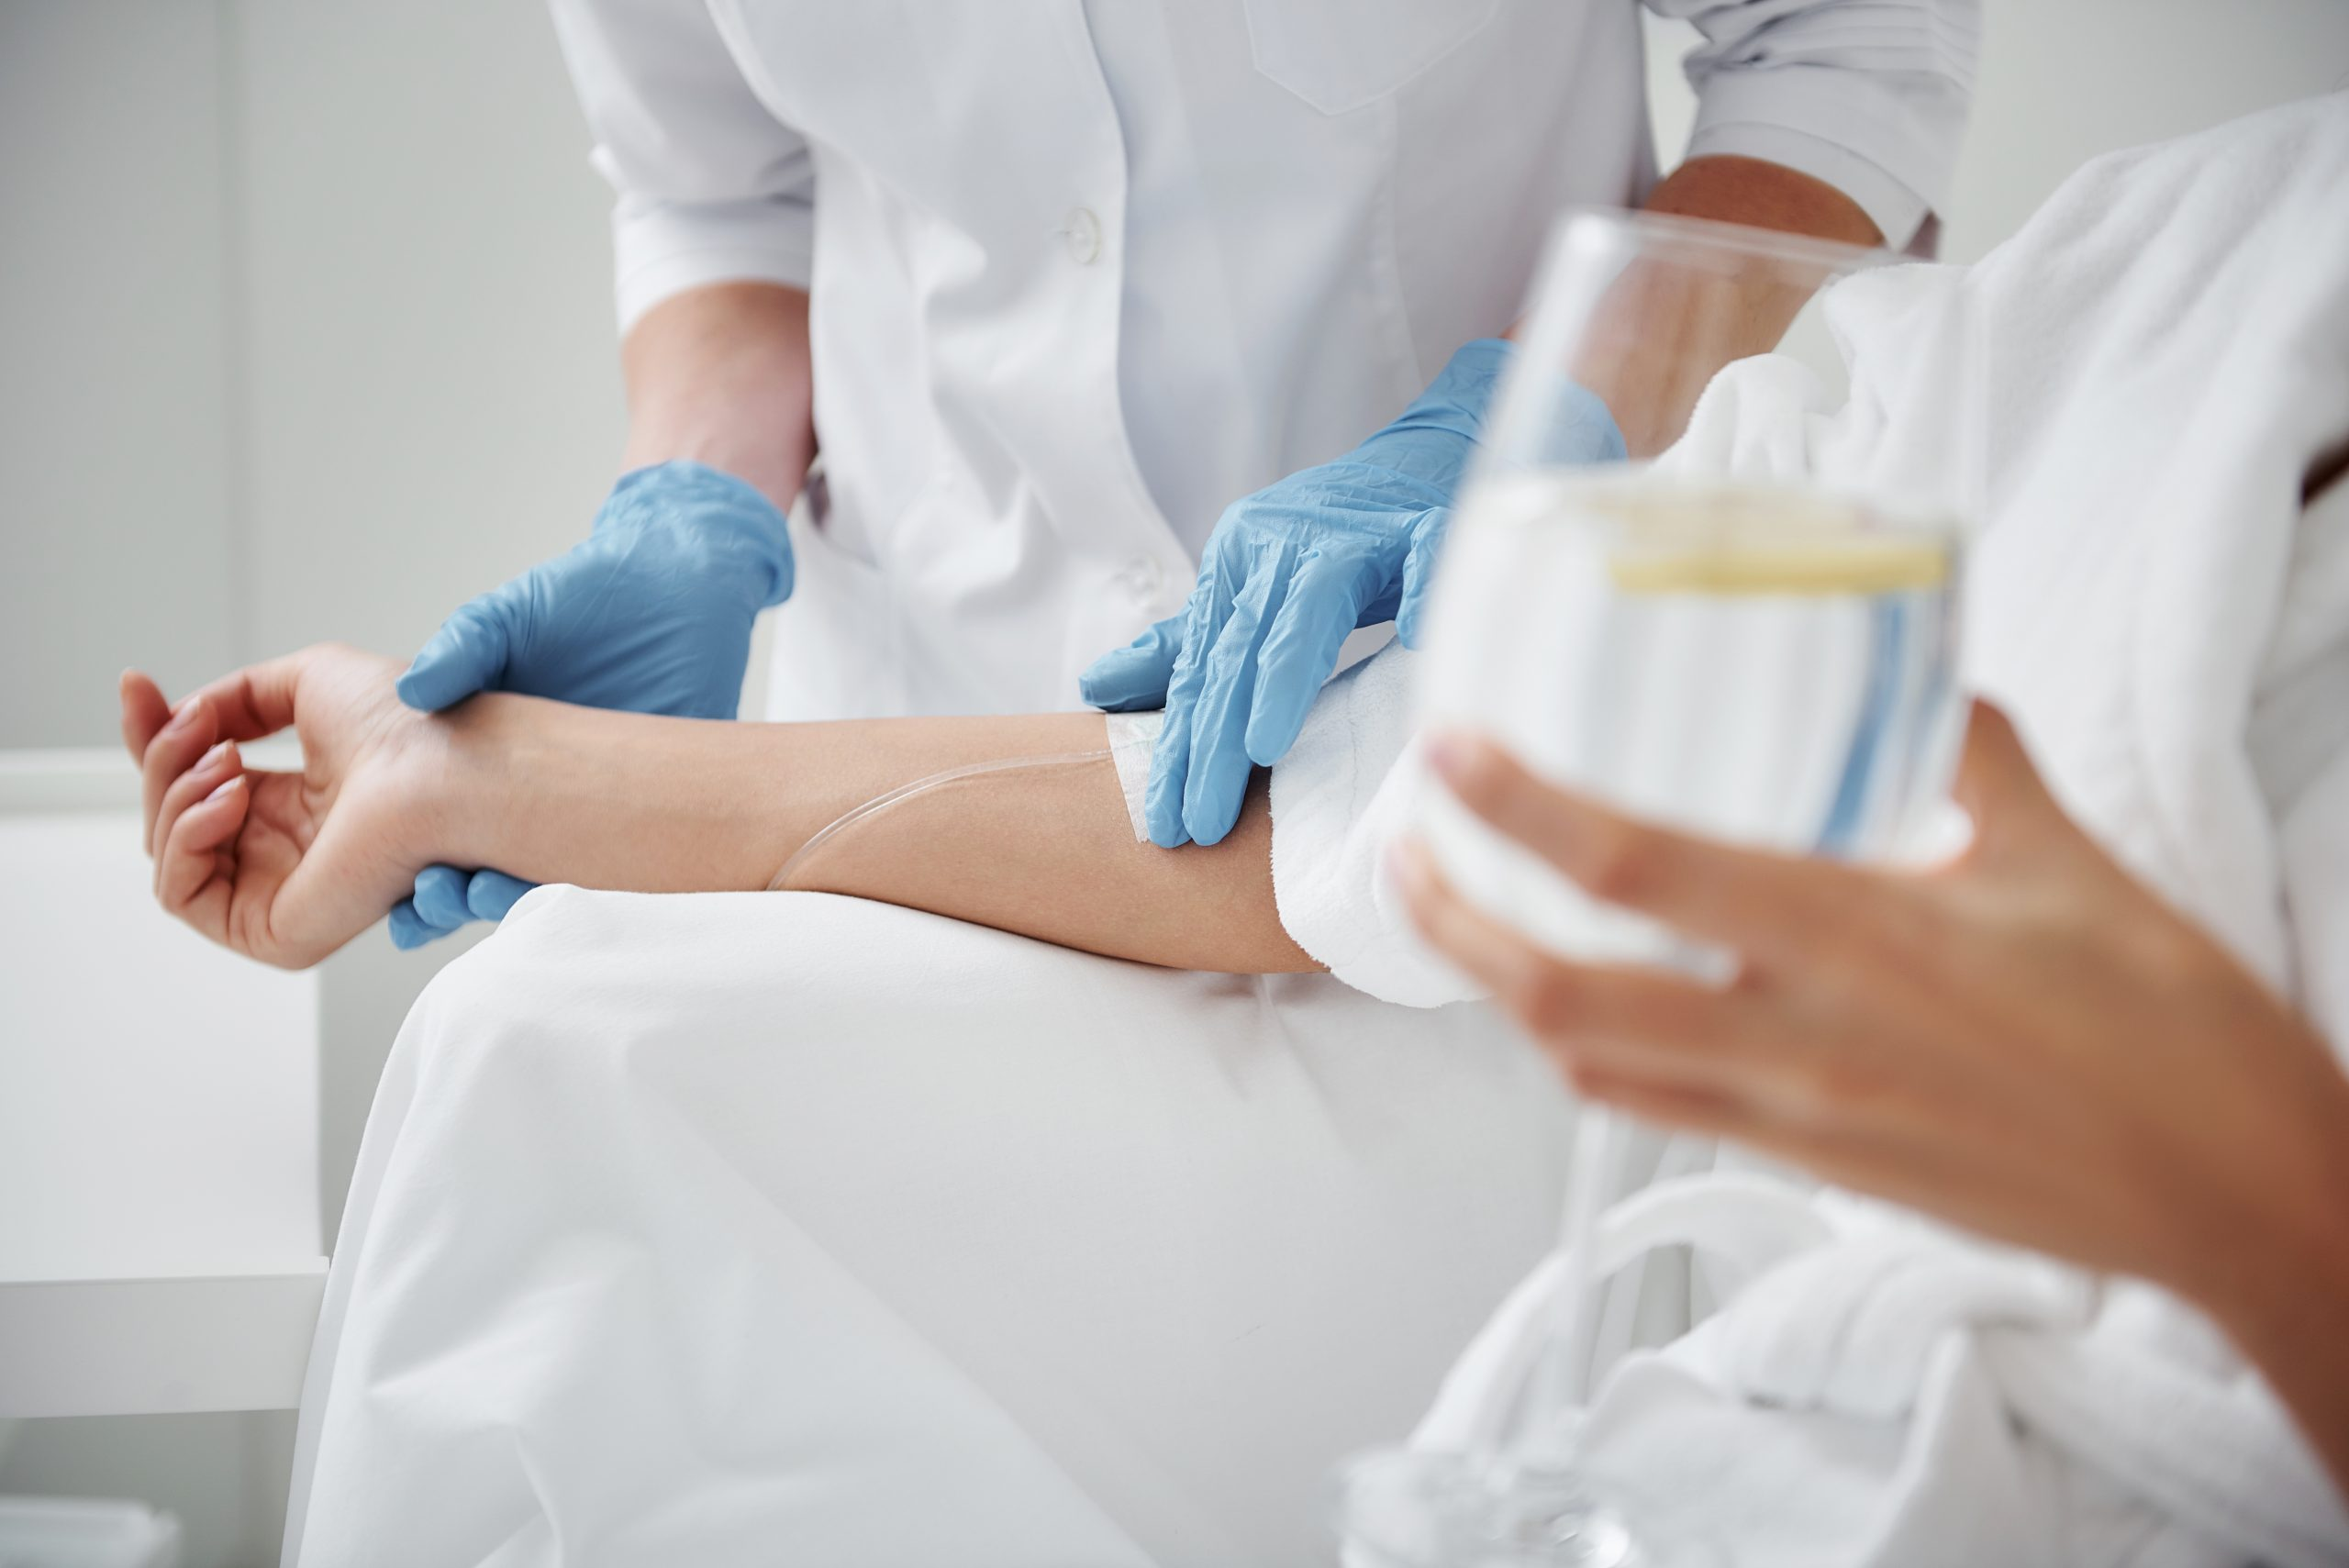 IV Therapy treatment with patient